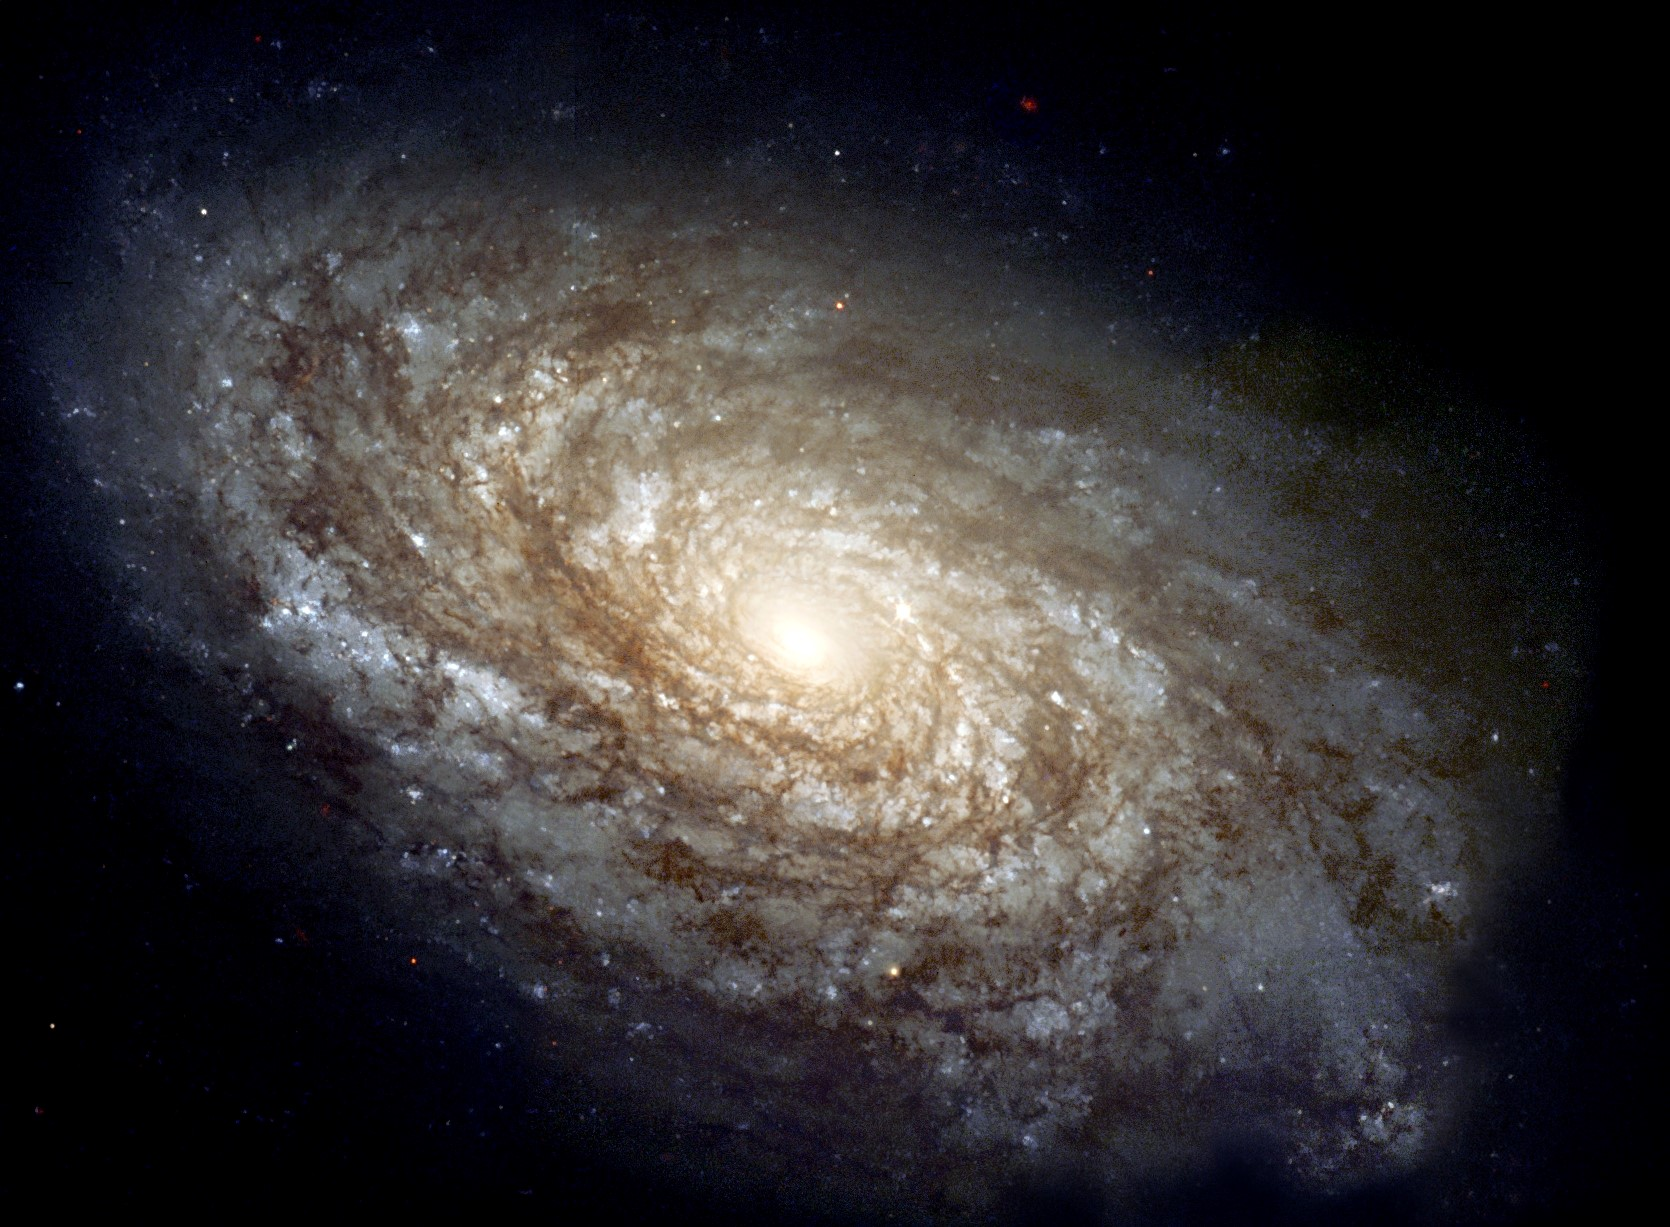 Cosmic dust is too cold to be captured by optical telescopes, so visual images of galaxies don't give the full story of conditions.